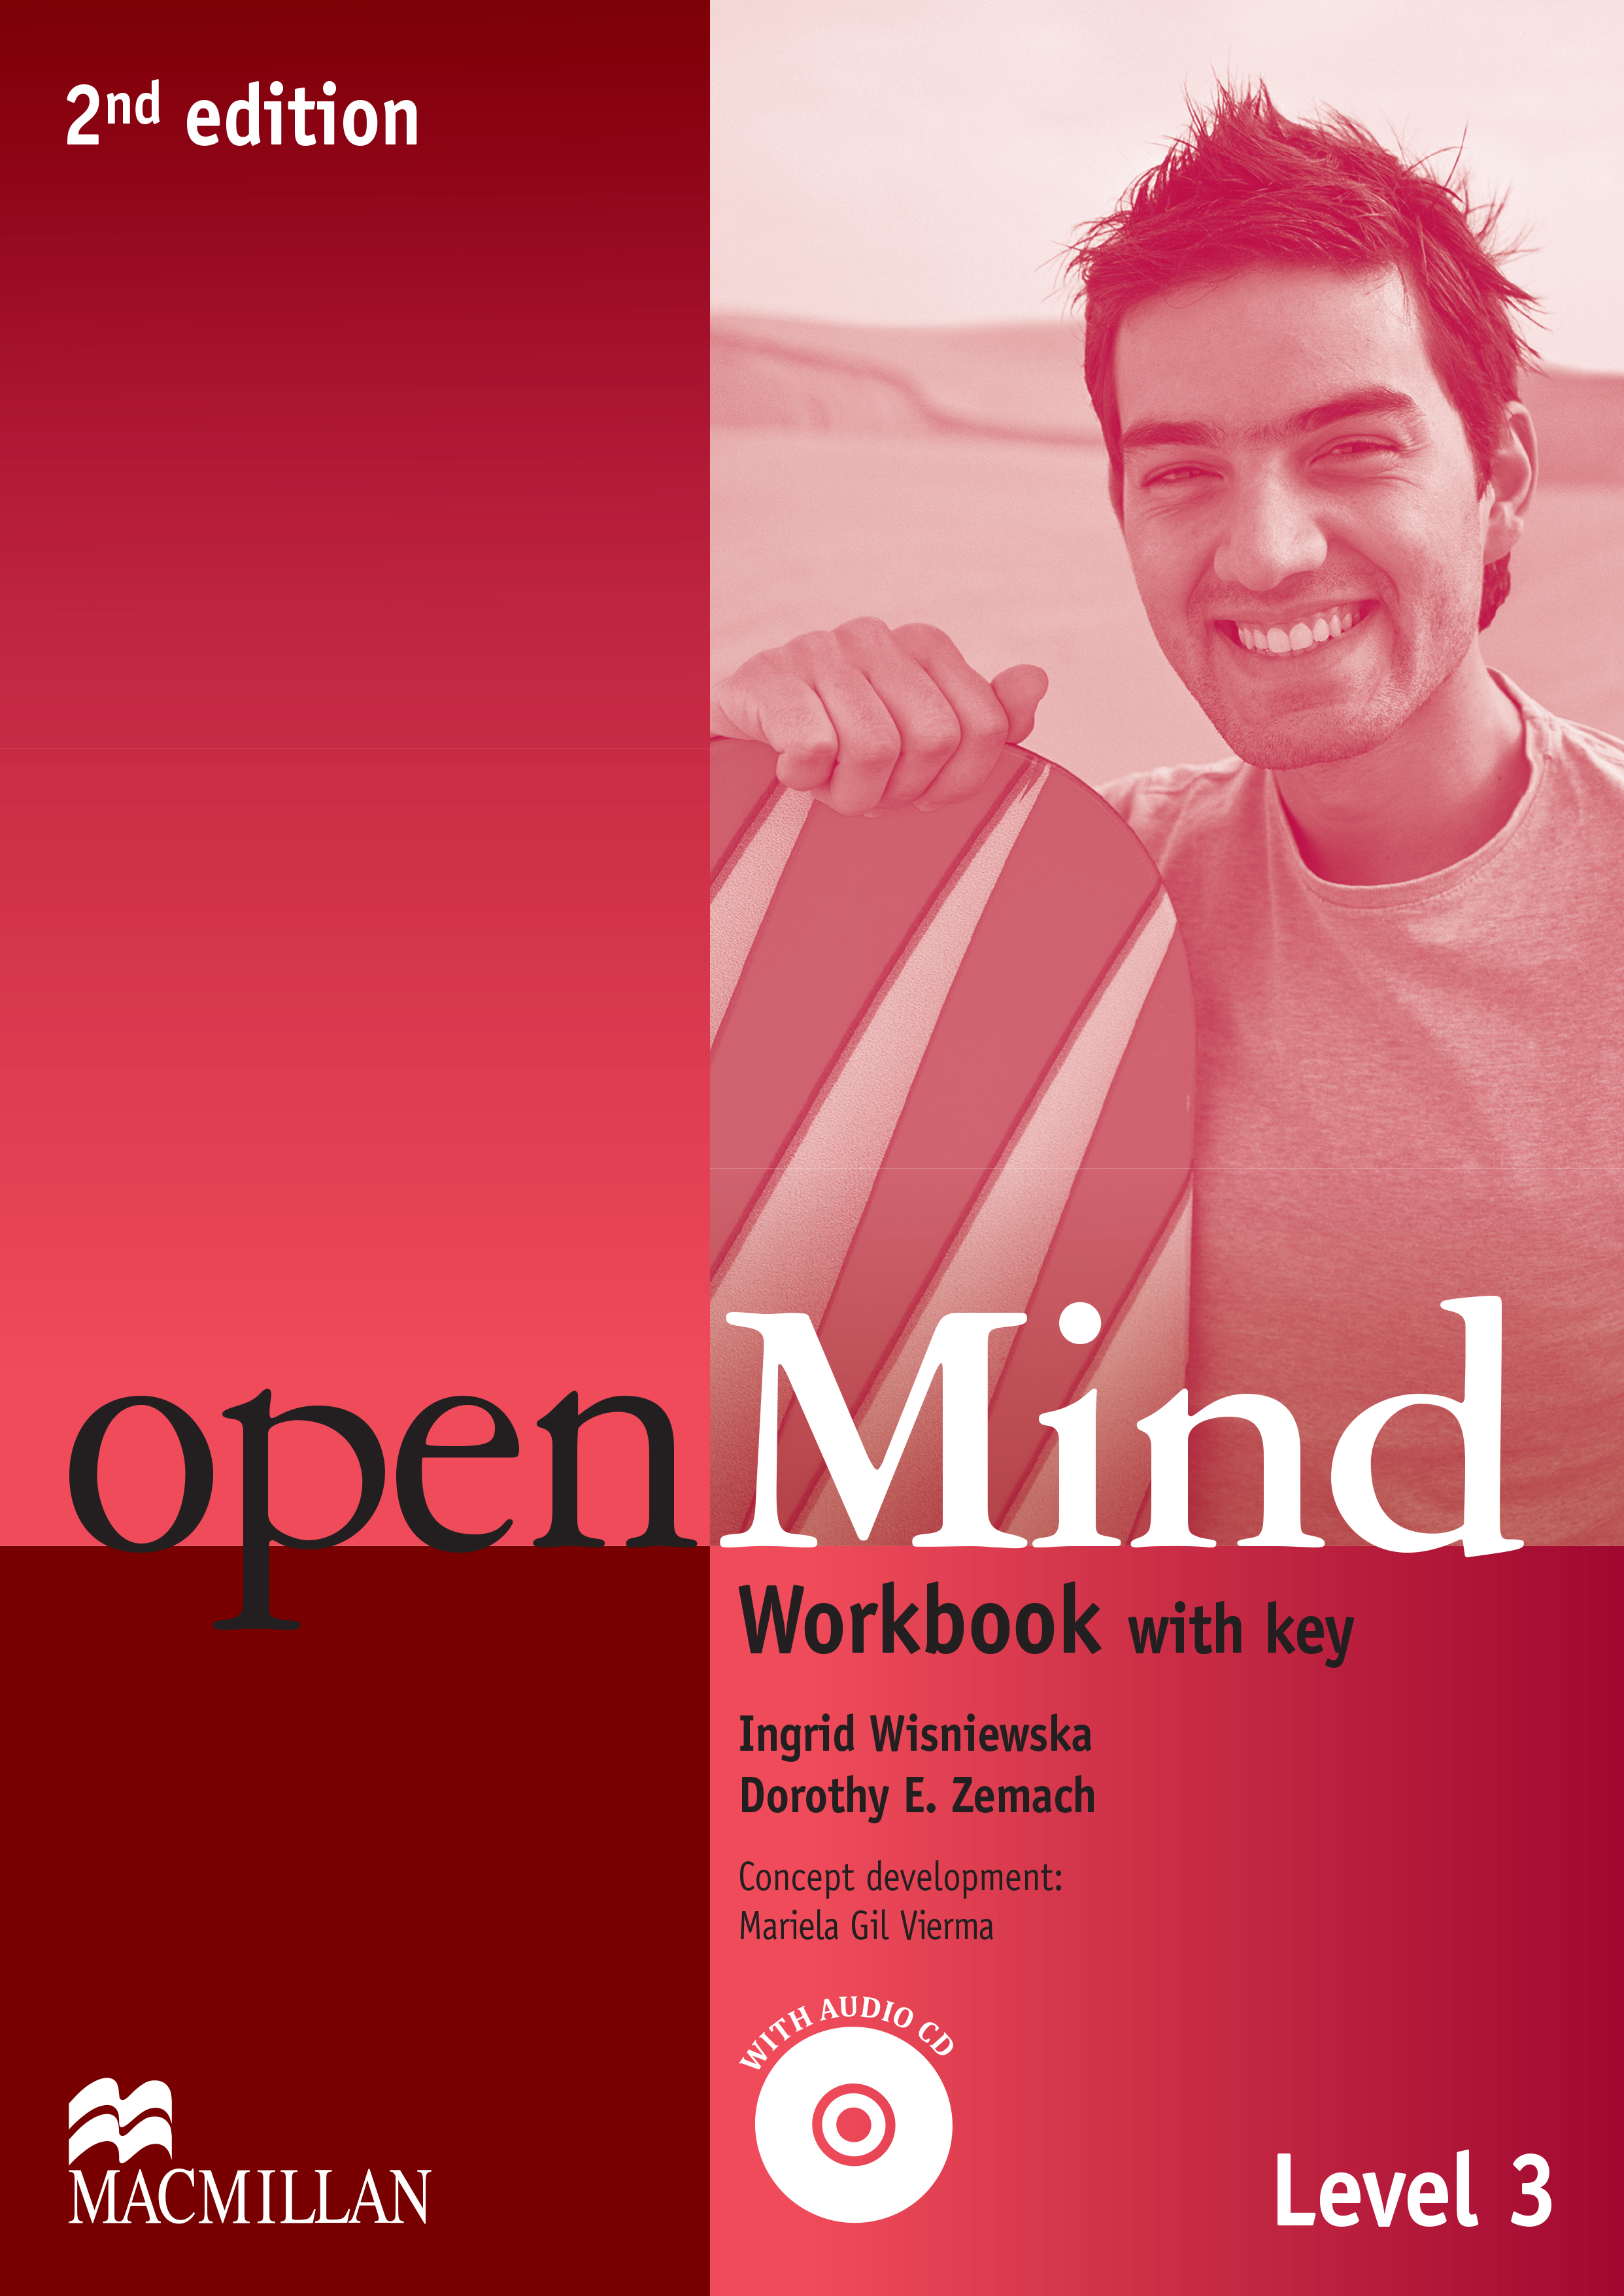 openMind 2nd Edition Level 3 Workbook with CD and Key